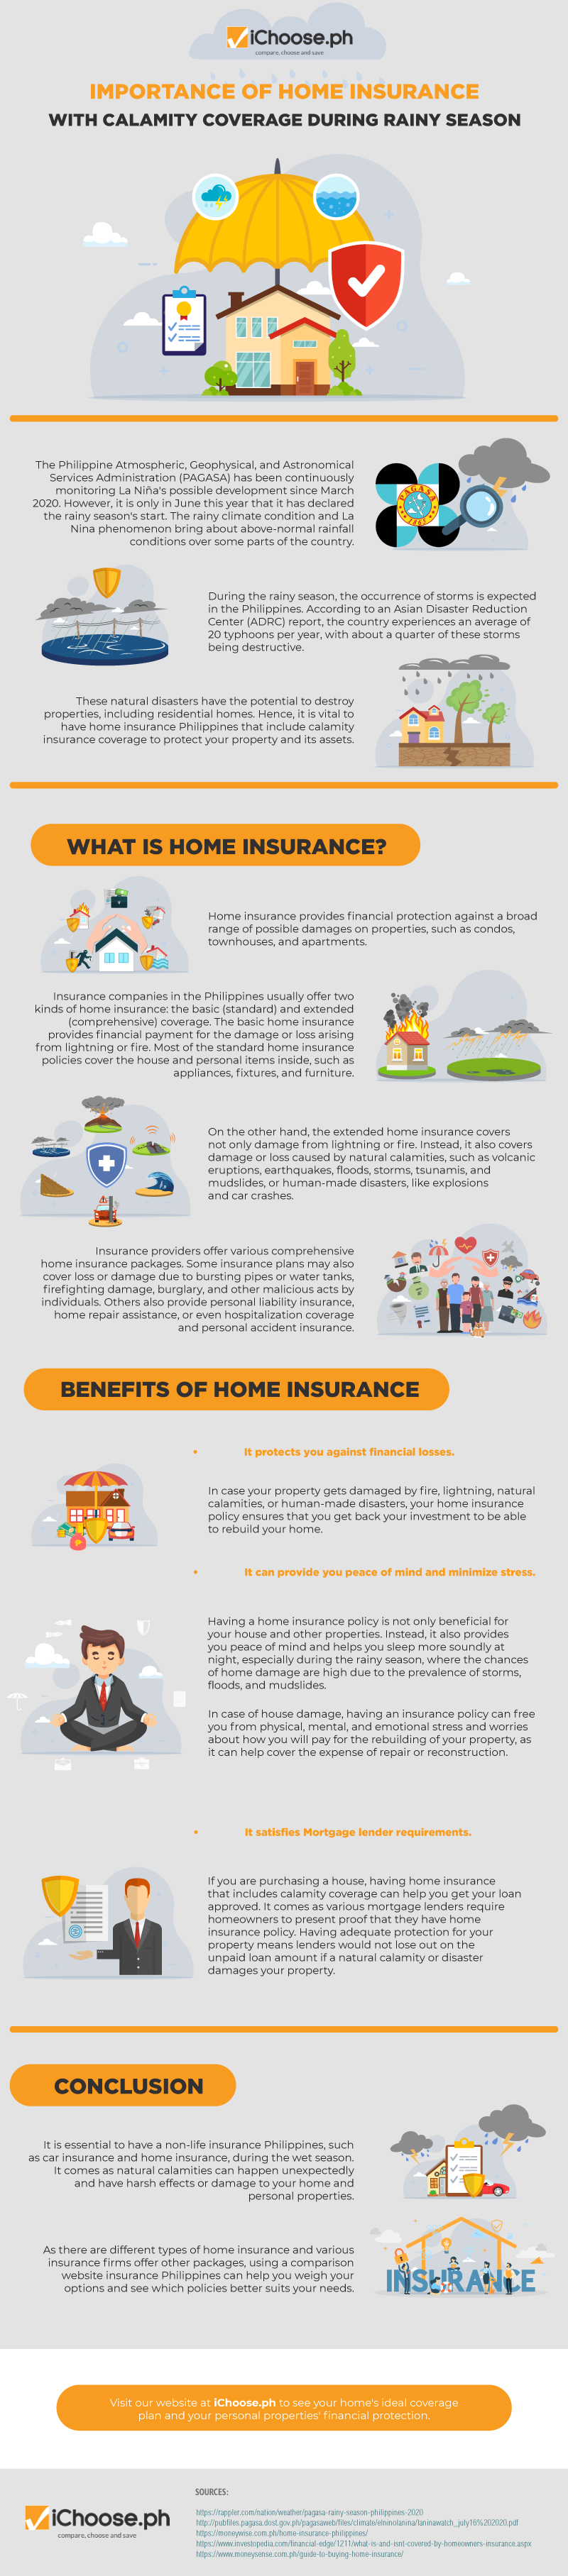 Importance-of-Home-Insurance-with-Calamity-Coverage-During-Rainy-Season infographic